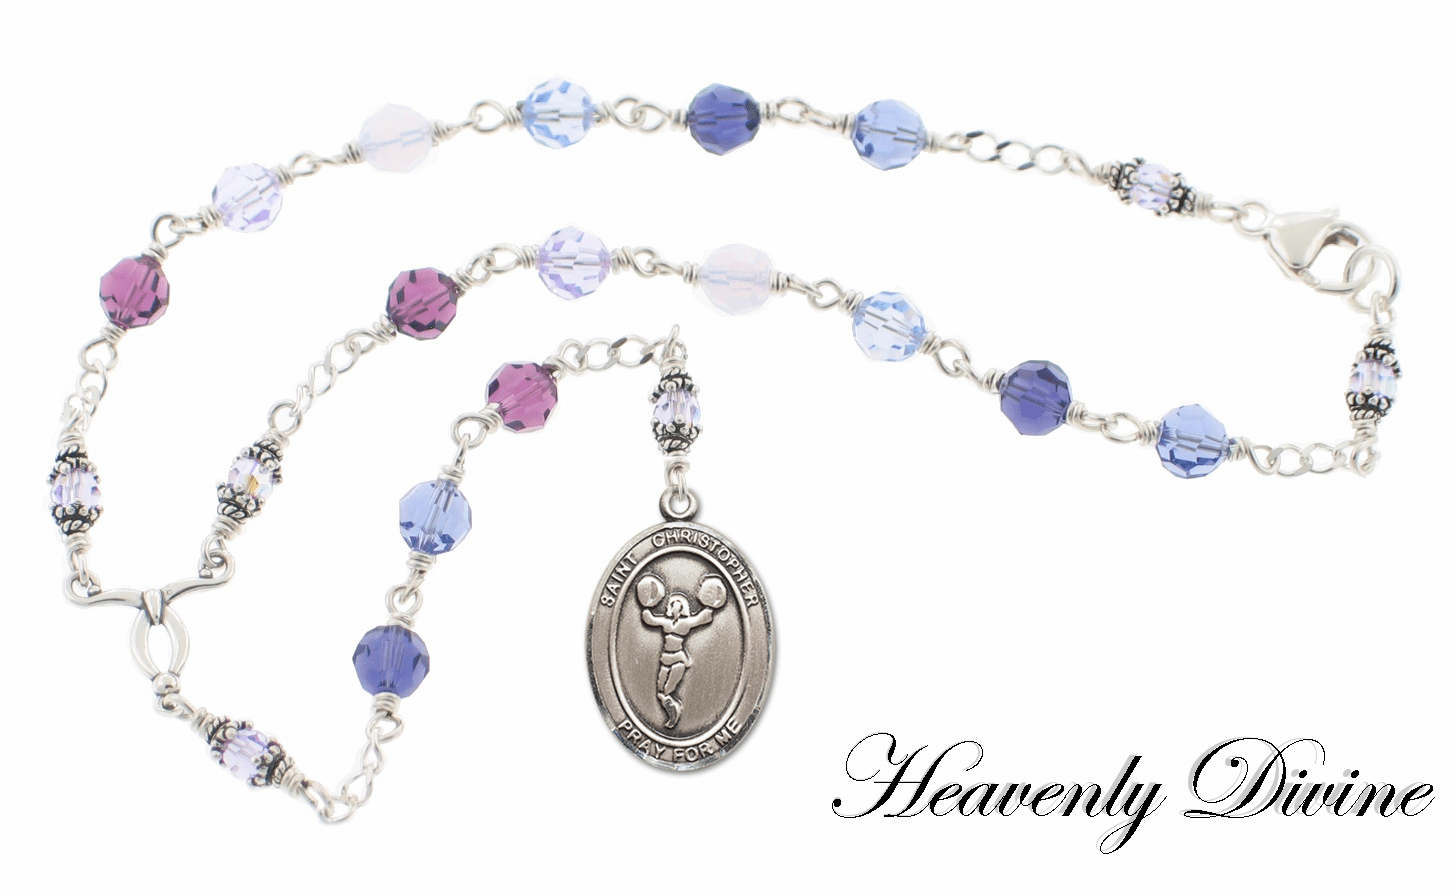 Handmade St. Christopher Sterling Silver Swarovski Crystal Auto Chaplet by Heavenly Divine